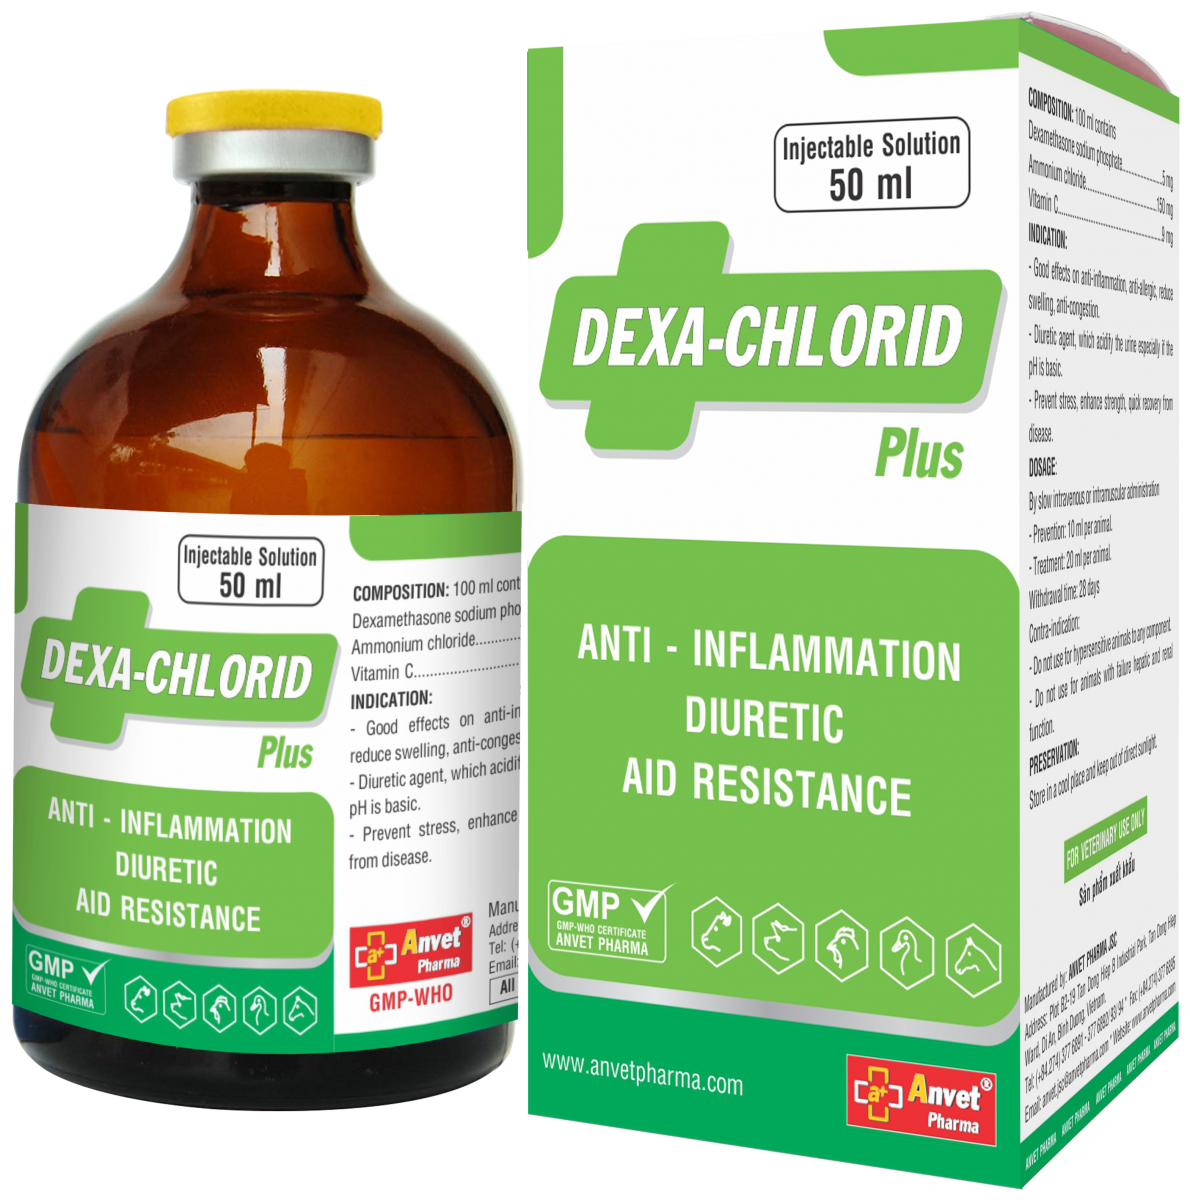 DEXA-CHLORID PLUS